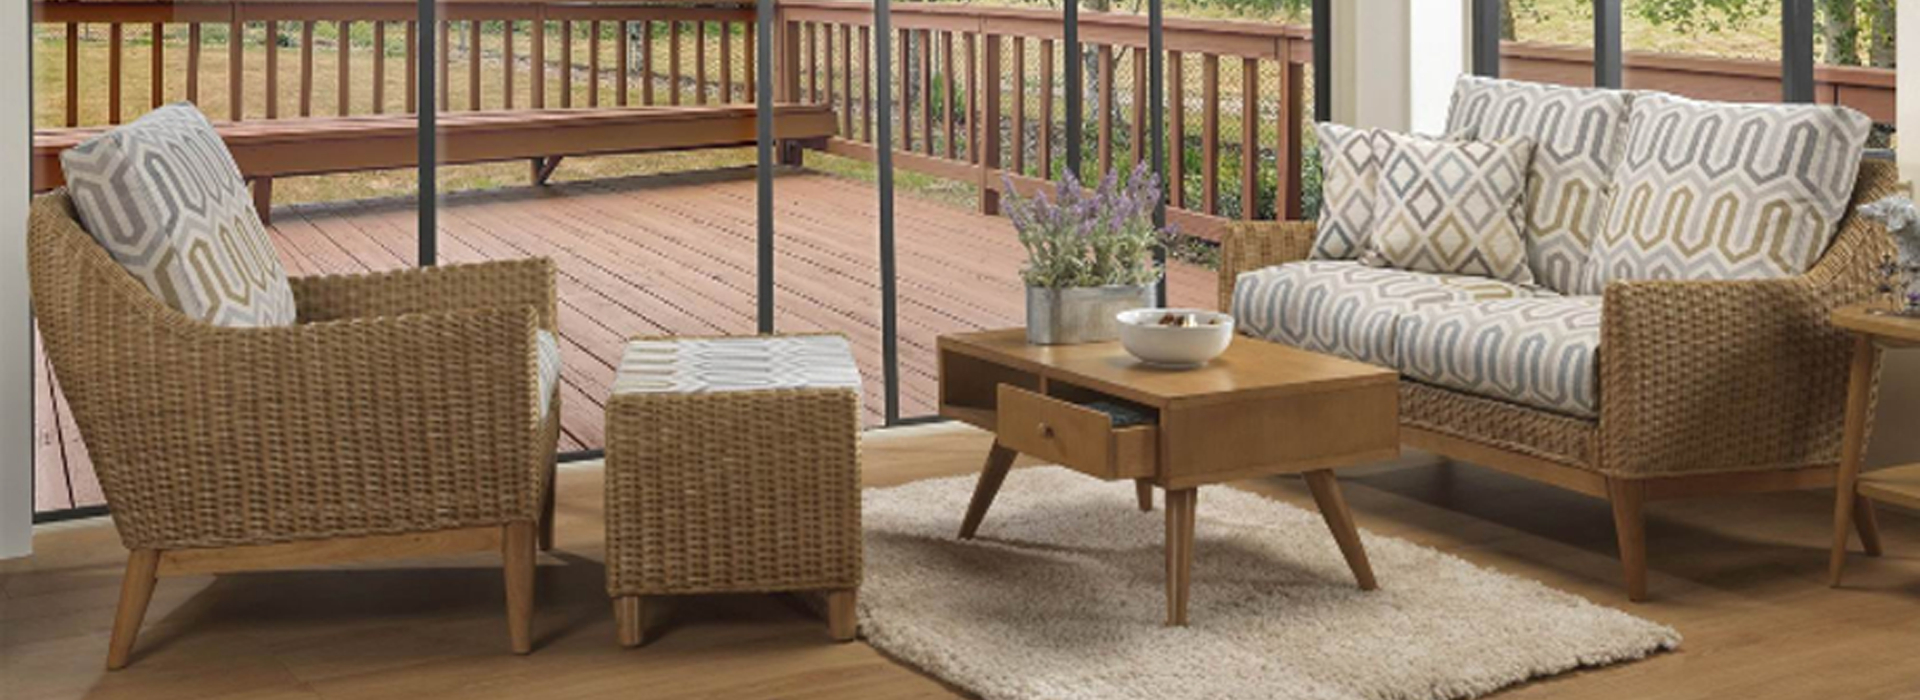 Camden Rattan Range In Light Oak Harpers Furniture